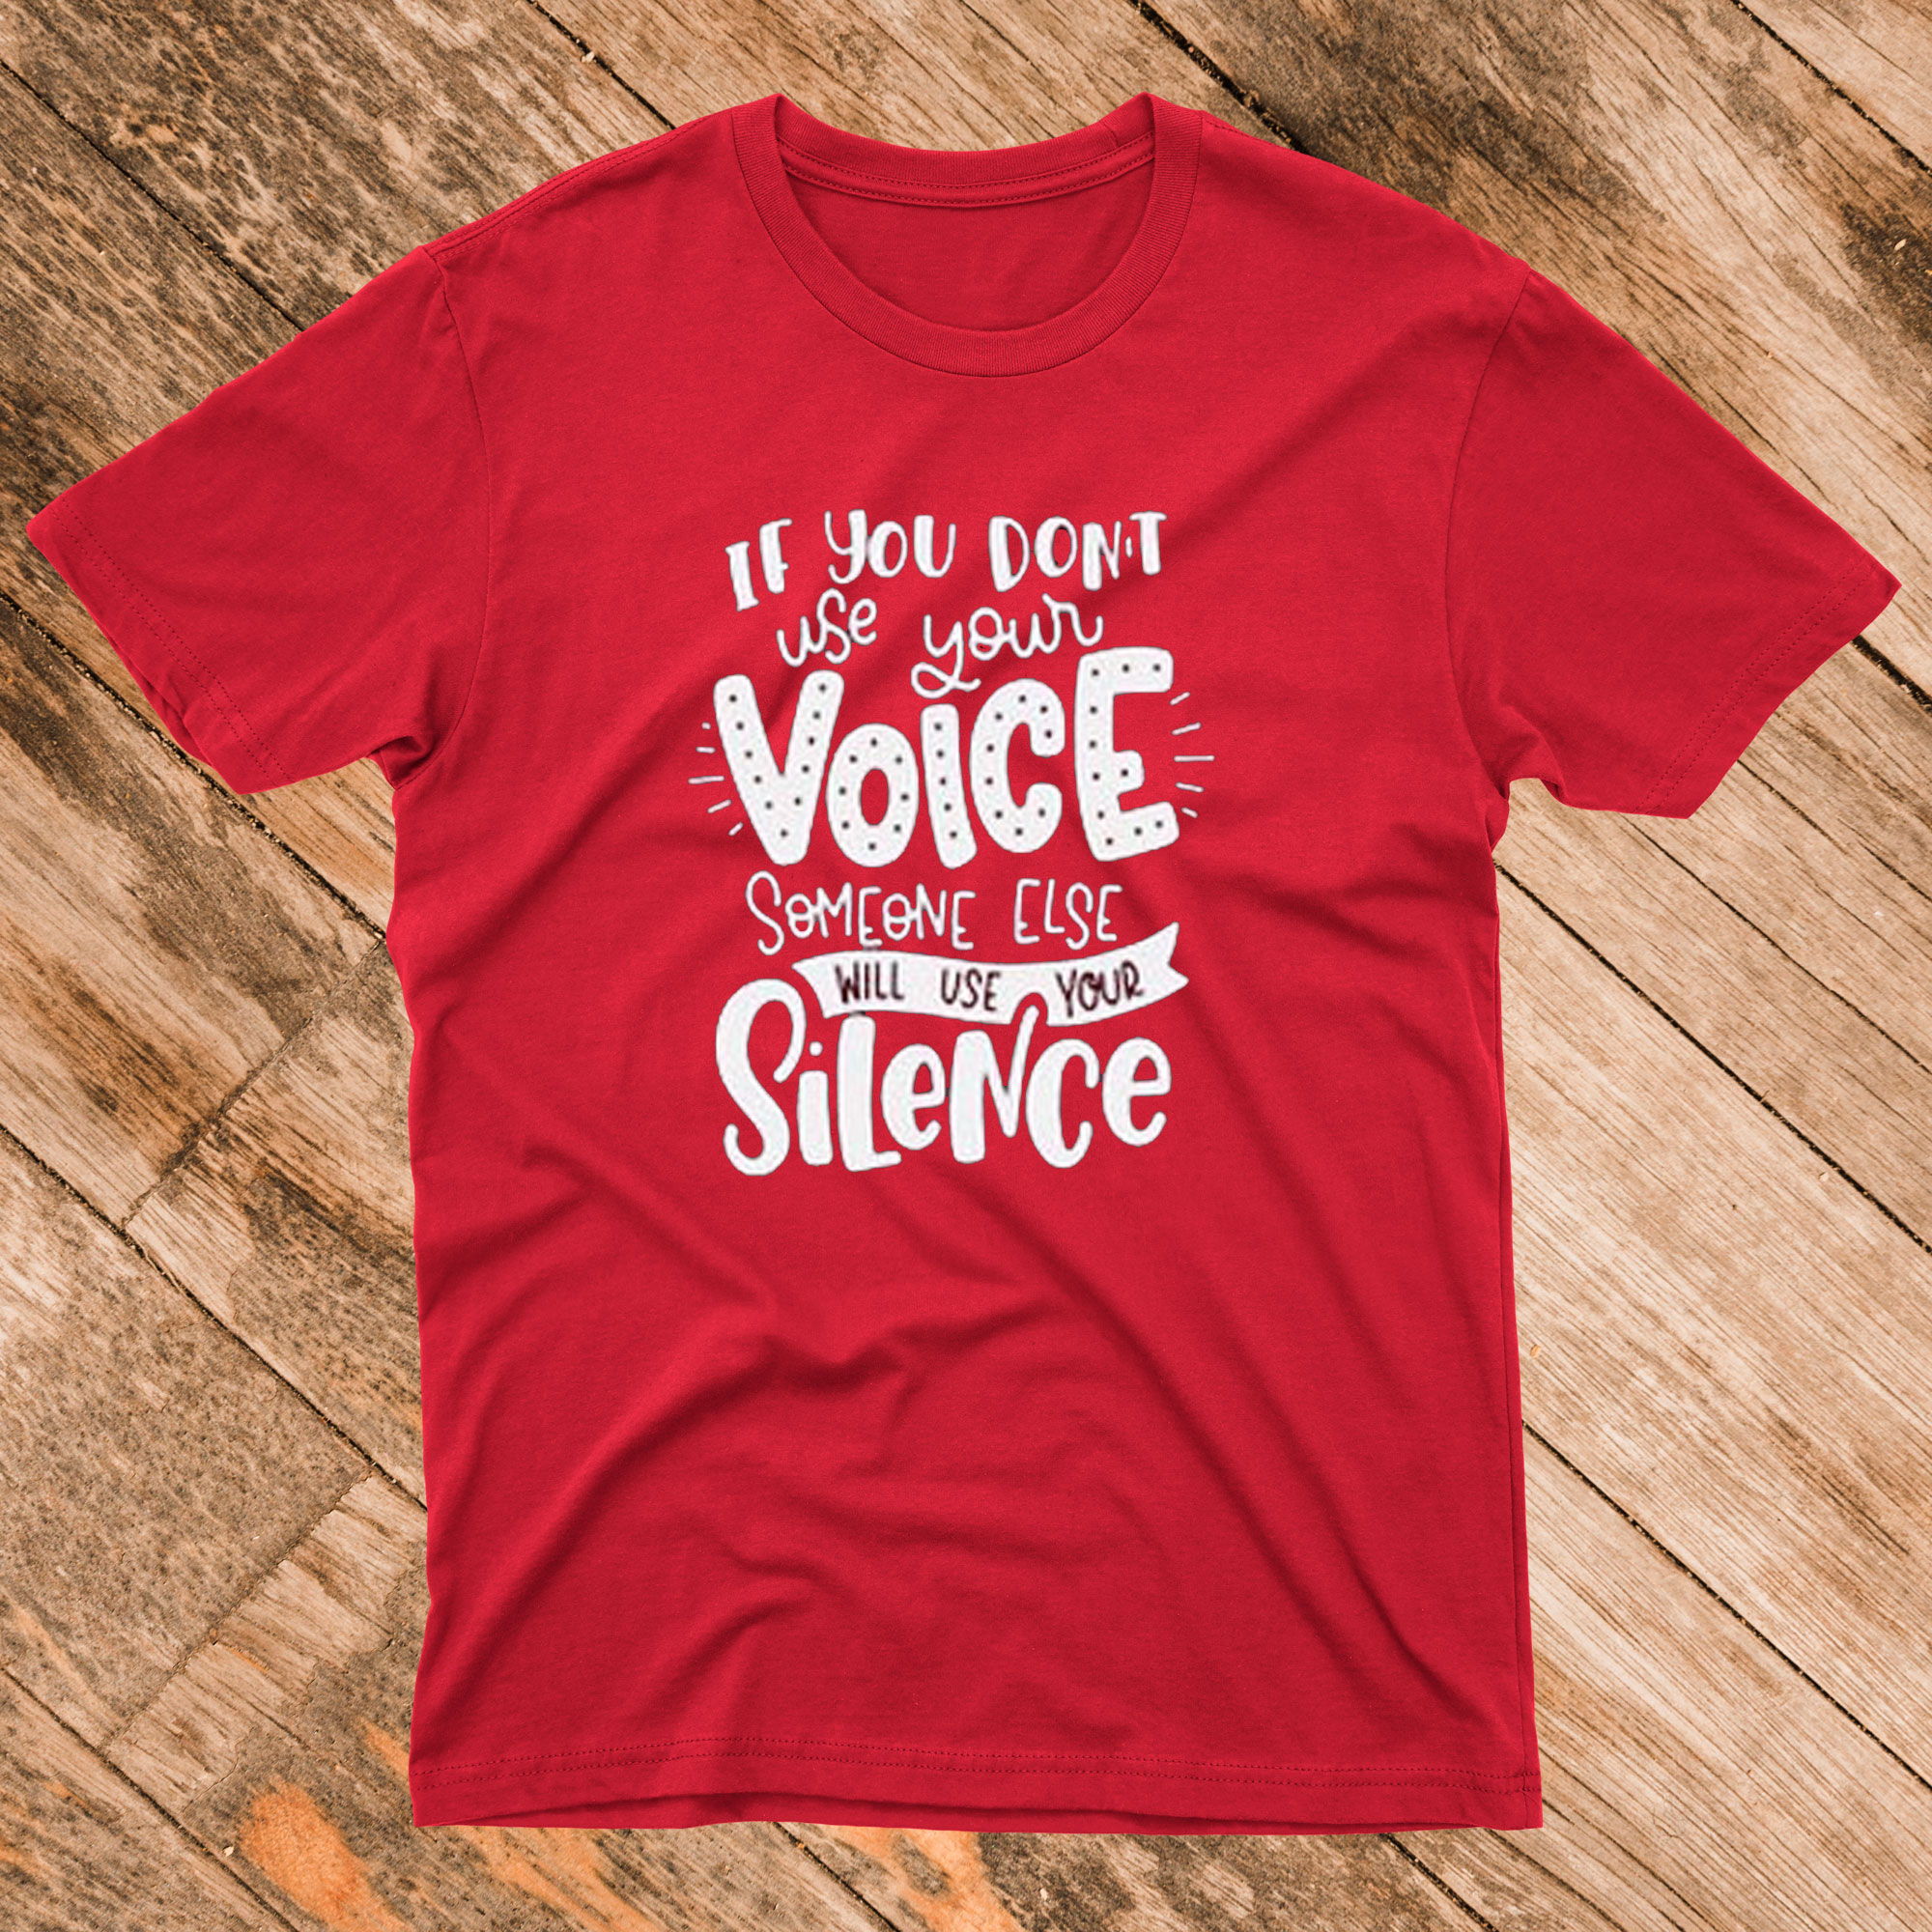 If You Don't Use Your Voice Someone Else Will Use Your Silence T shirt